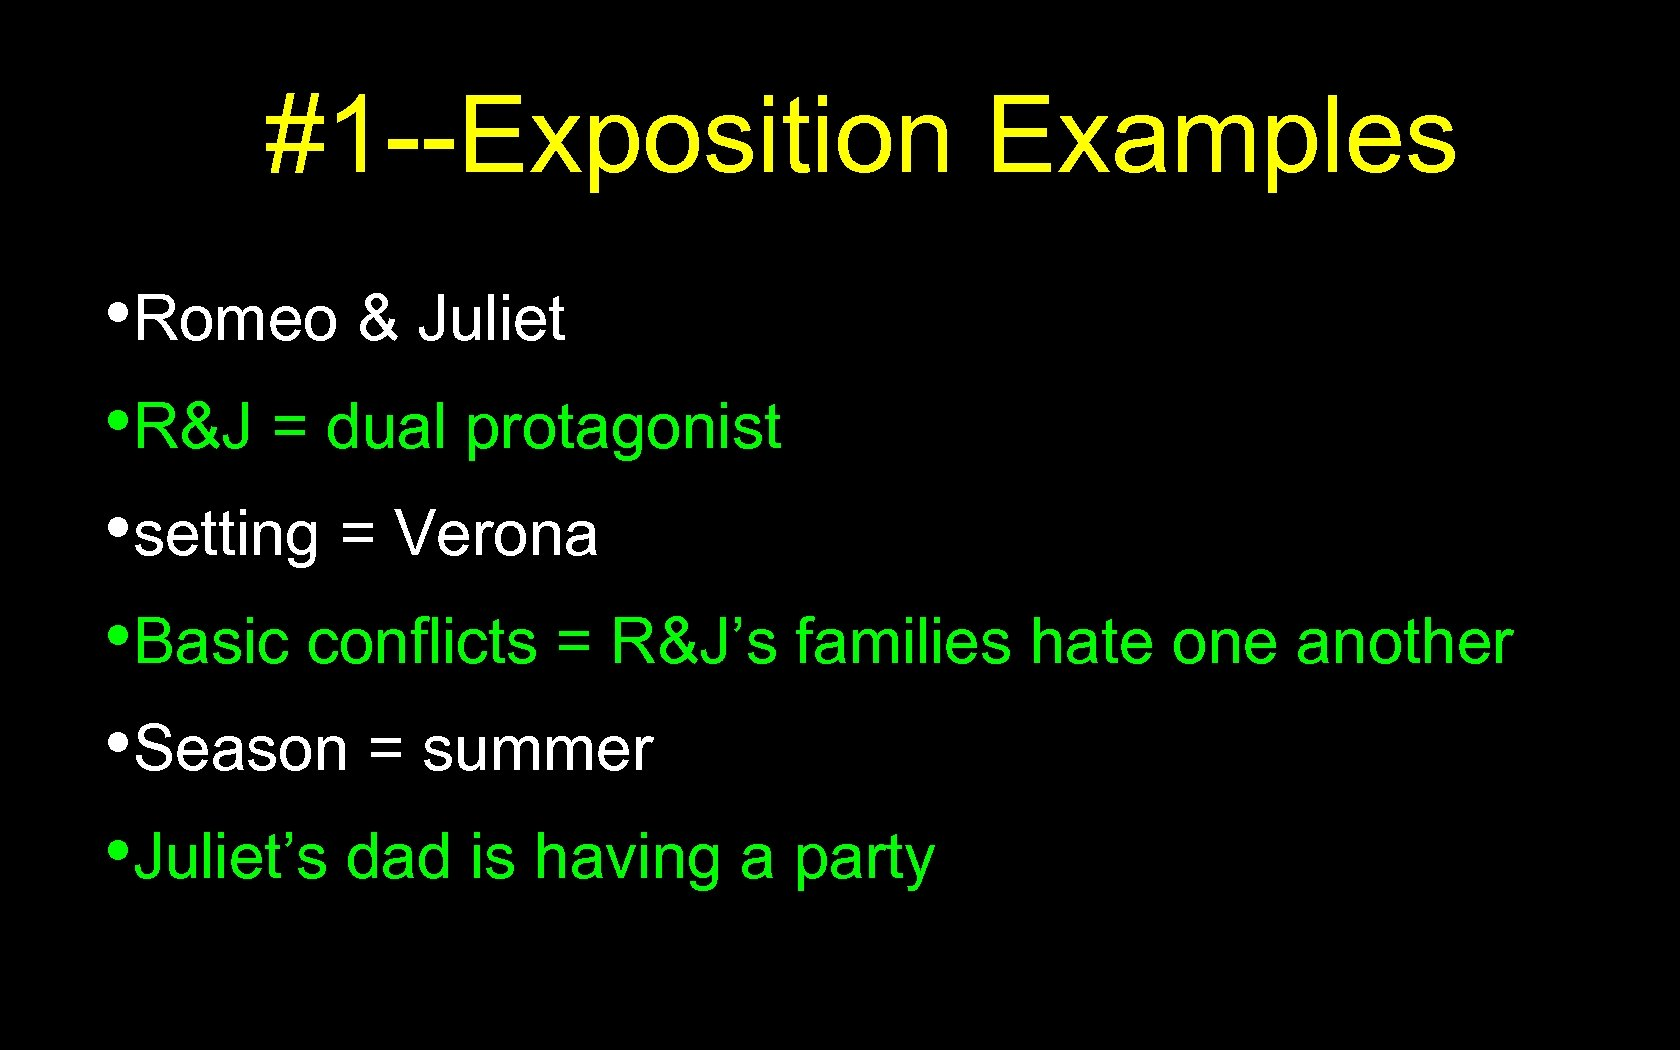 #1 --Exposition Examples • Romeo & Juliet • R&J = dual protagonist • setting